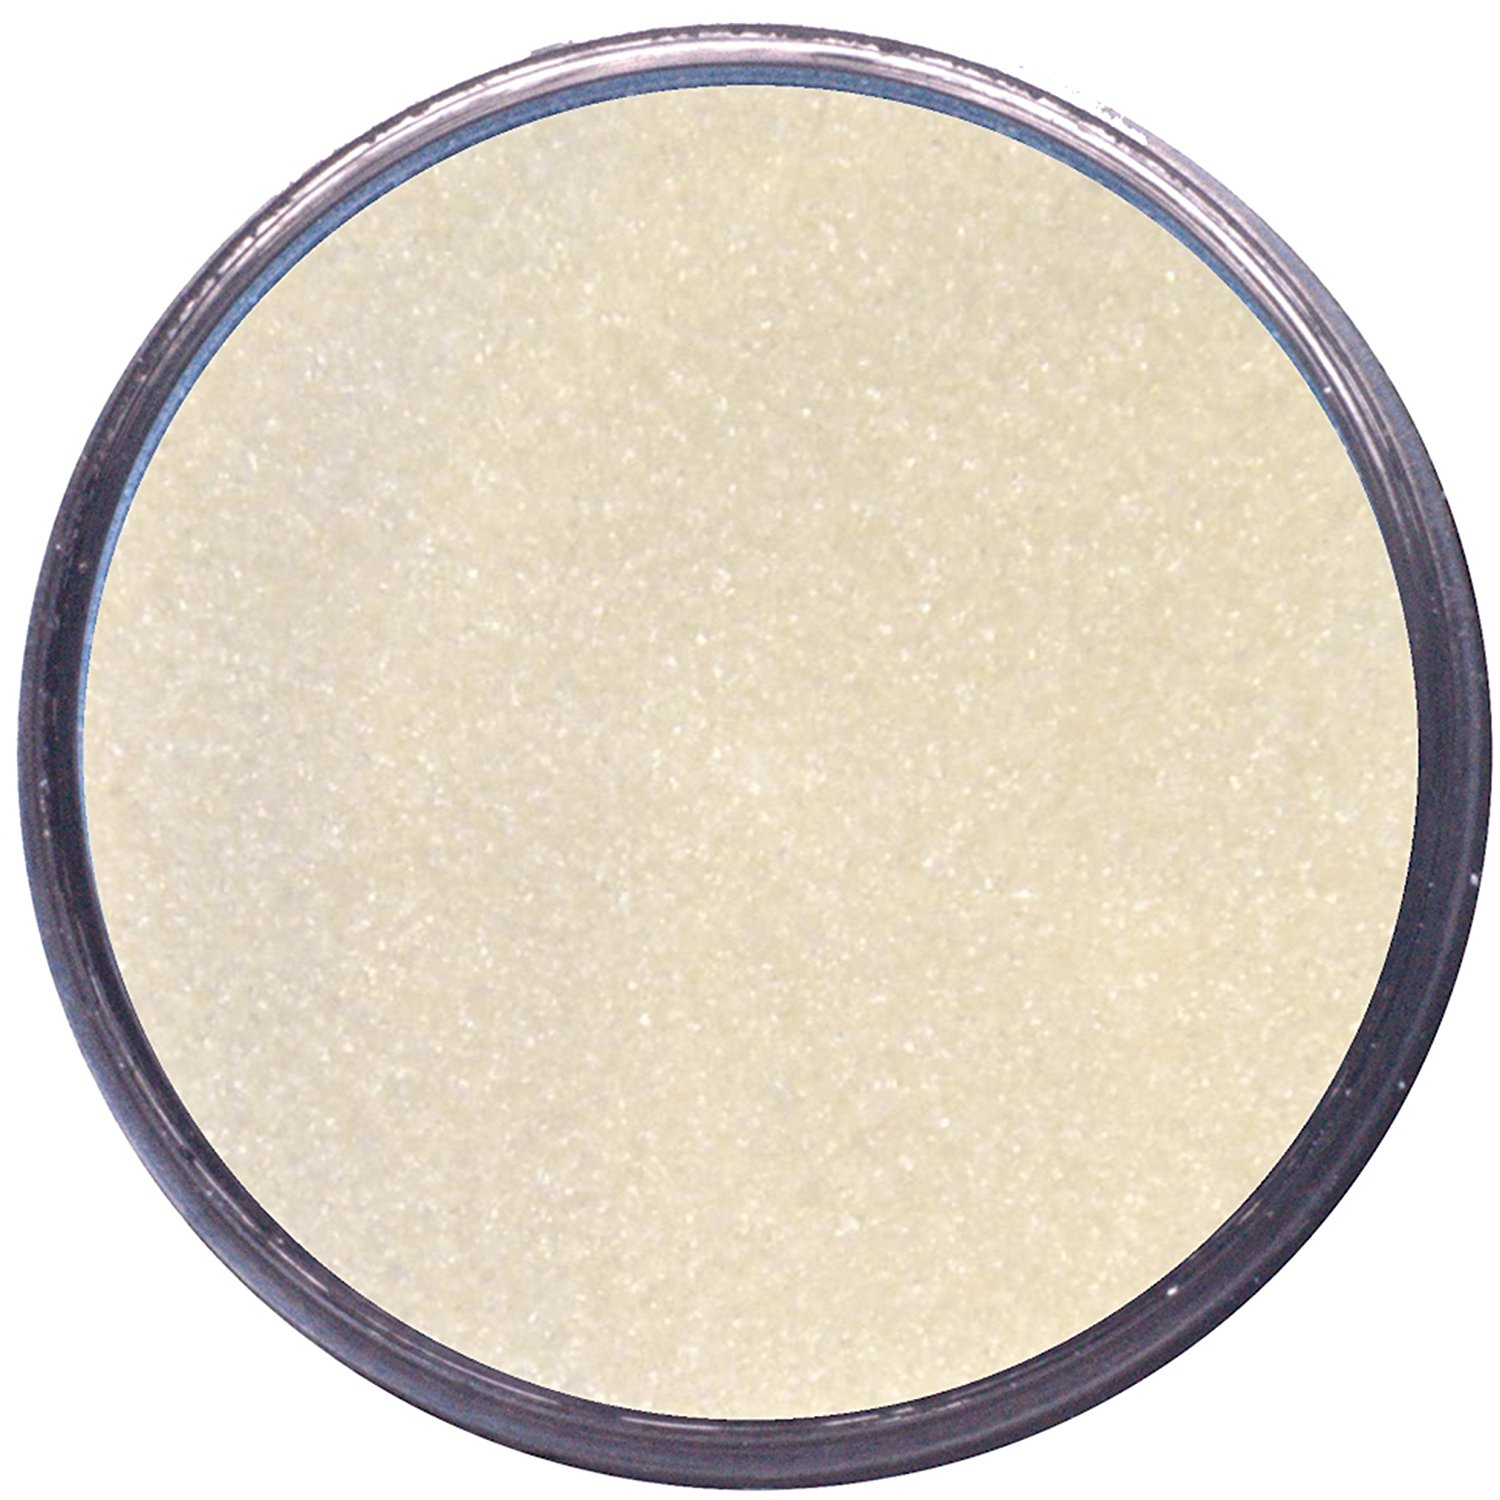 WOW! Embossing Powder, 15ml, Silver Pearl, WOW EMBOSSING POWDER: WOW! Embossing Powder By Wow Embossing Powder